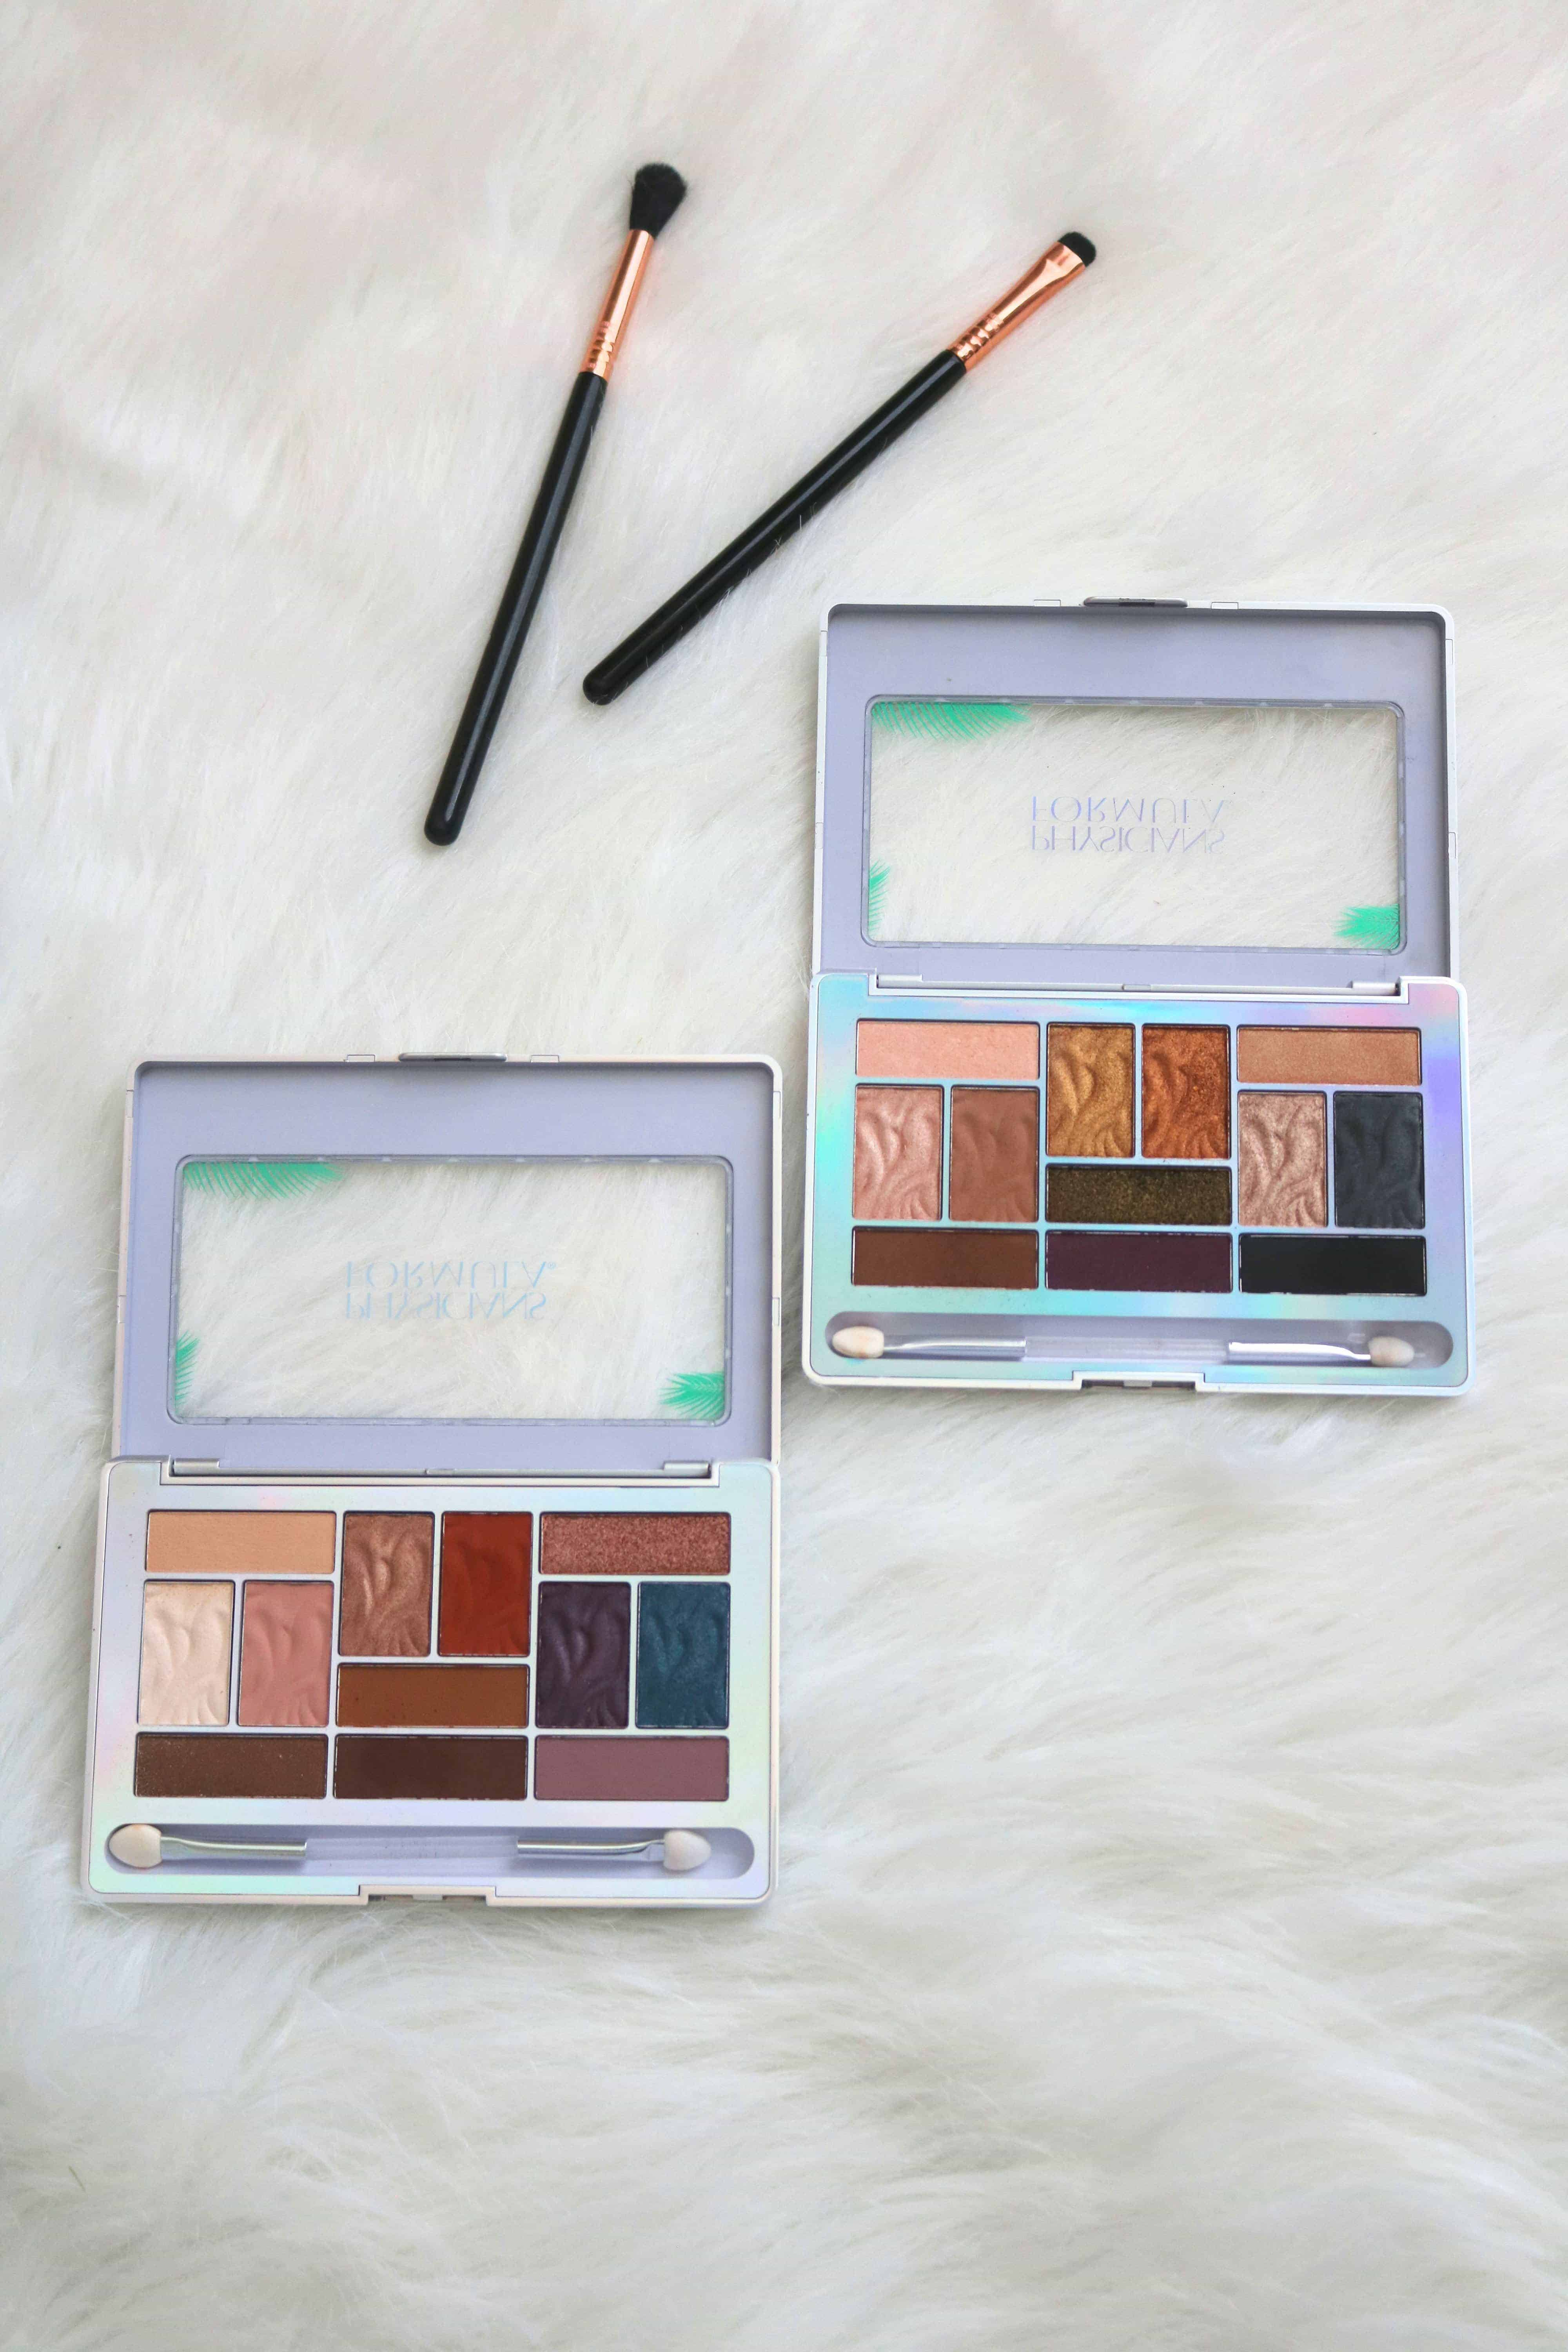 New Drugstore Makeup Alert! The Physicians Formula Butter Eyeshadow Palettes feature 12 gorgeous shades each and would be a great addition to your spring and summer makeup collection. Click through for the full review with swatches! #drugstoremakeup #eyeshadowpalette #physiciansformula